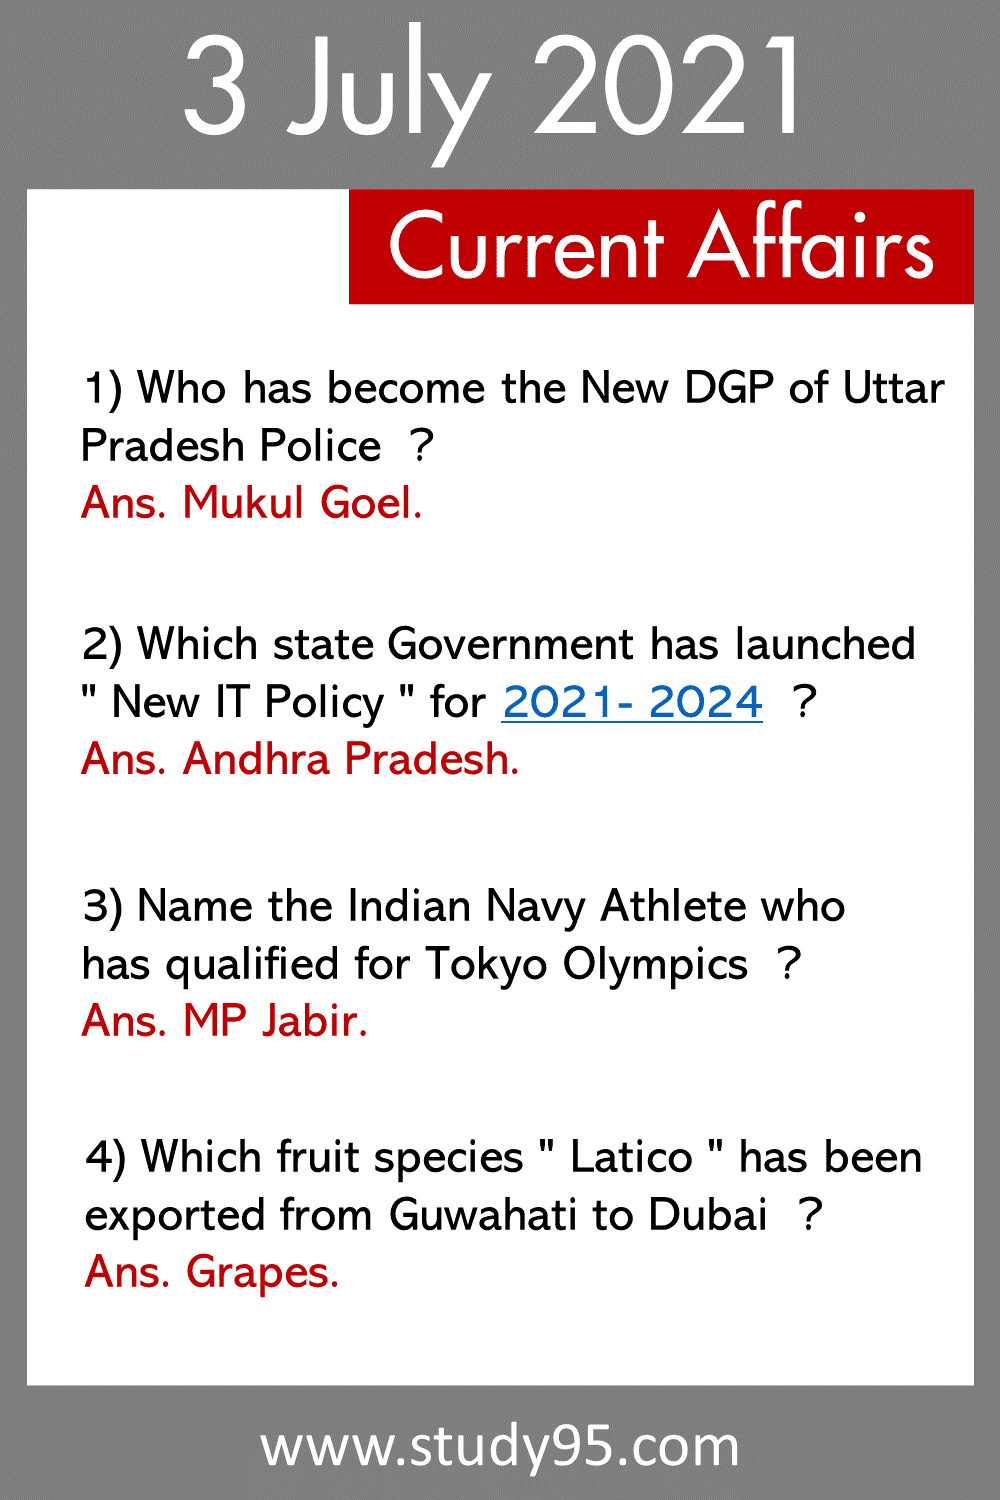 3 July 2021 Current Affairs